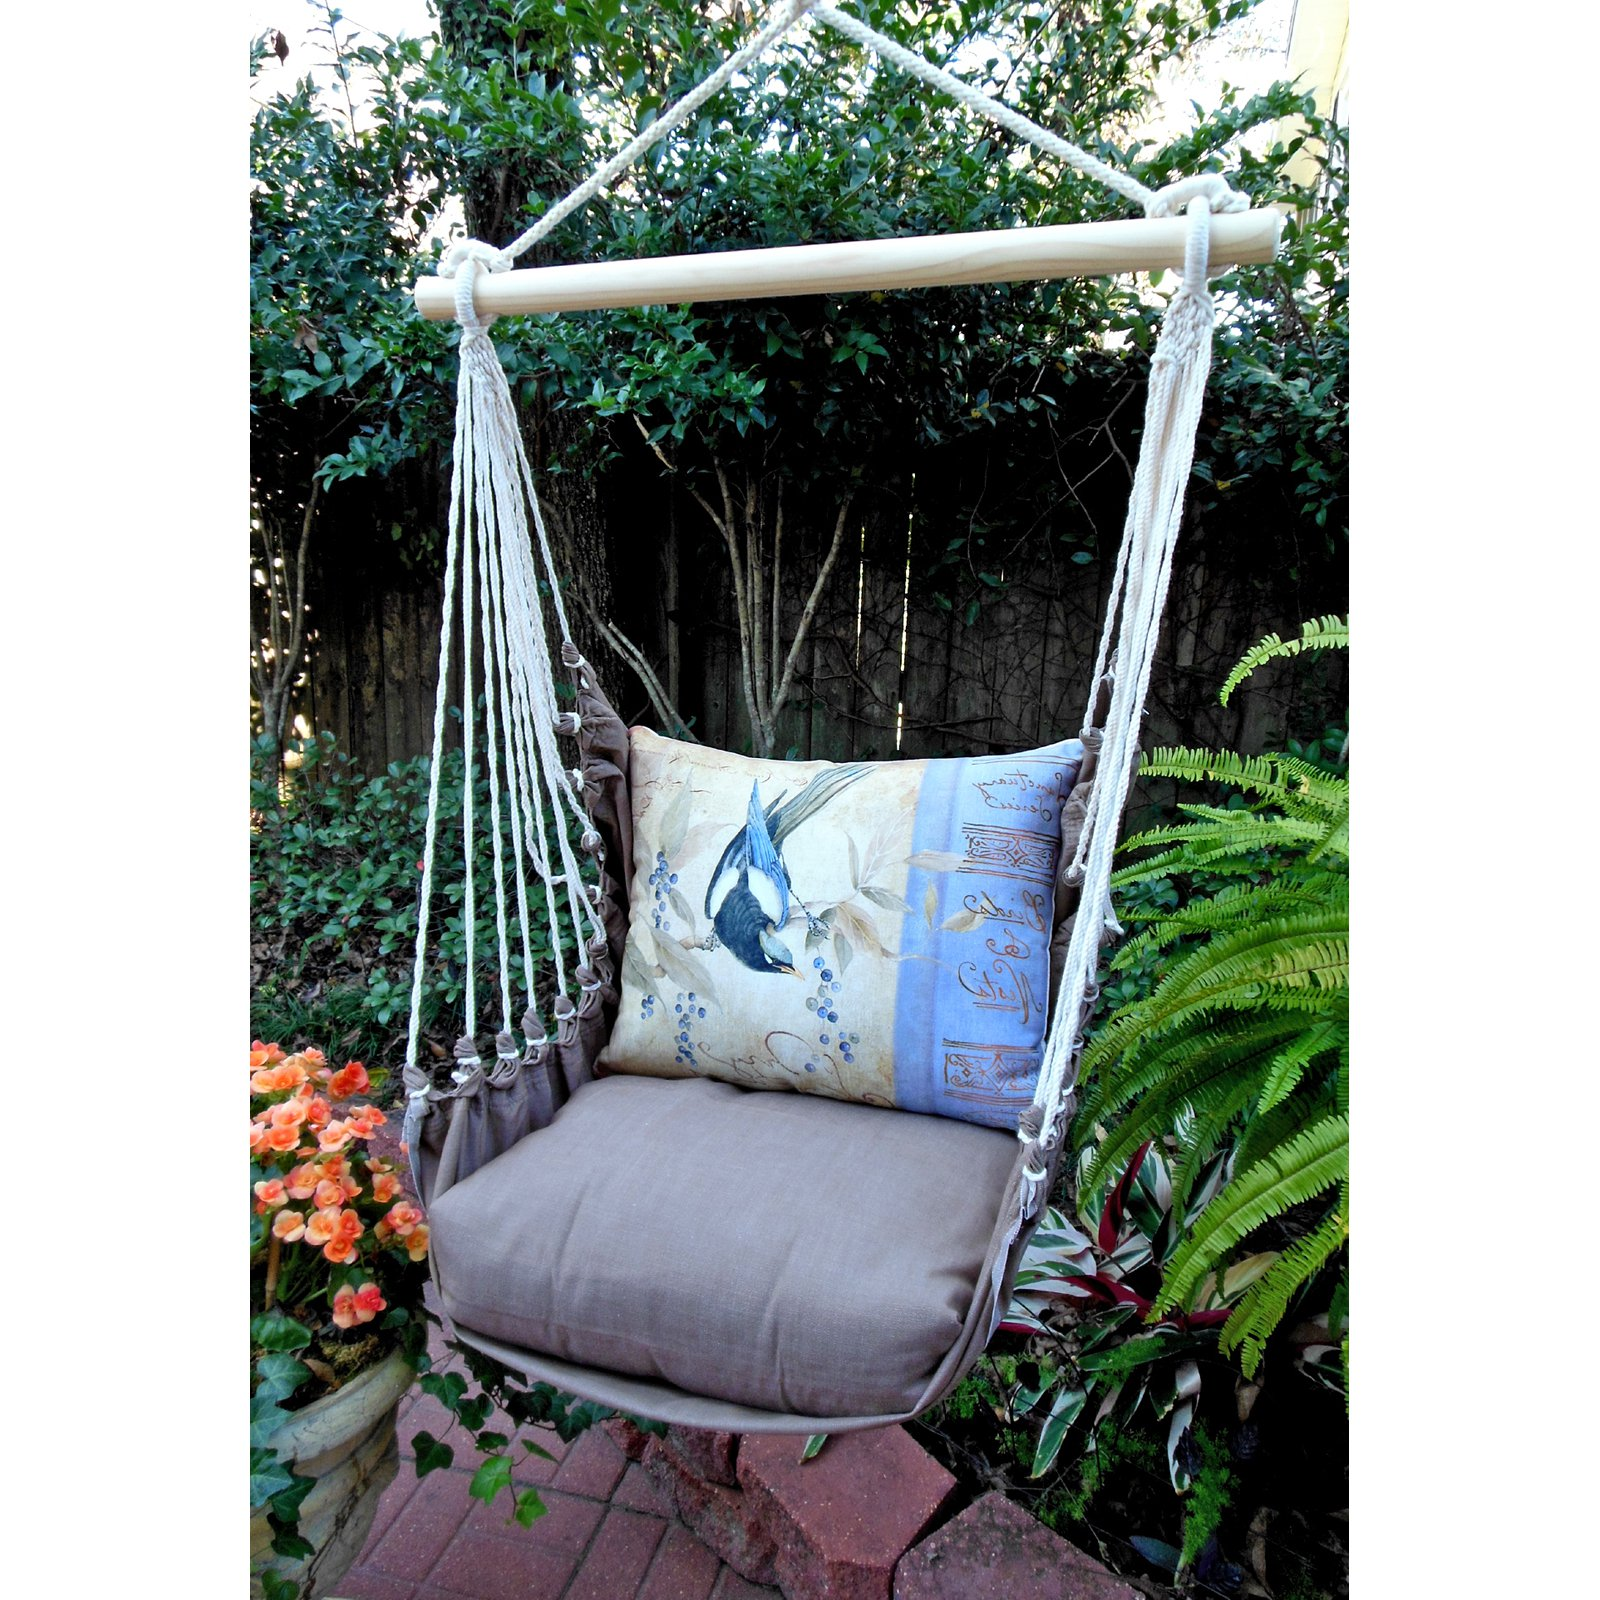 Magnolia Casual Bluejay Hammock Chair & Pillow Set